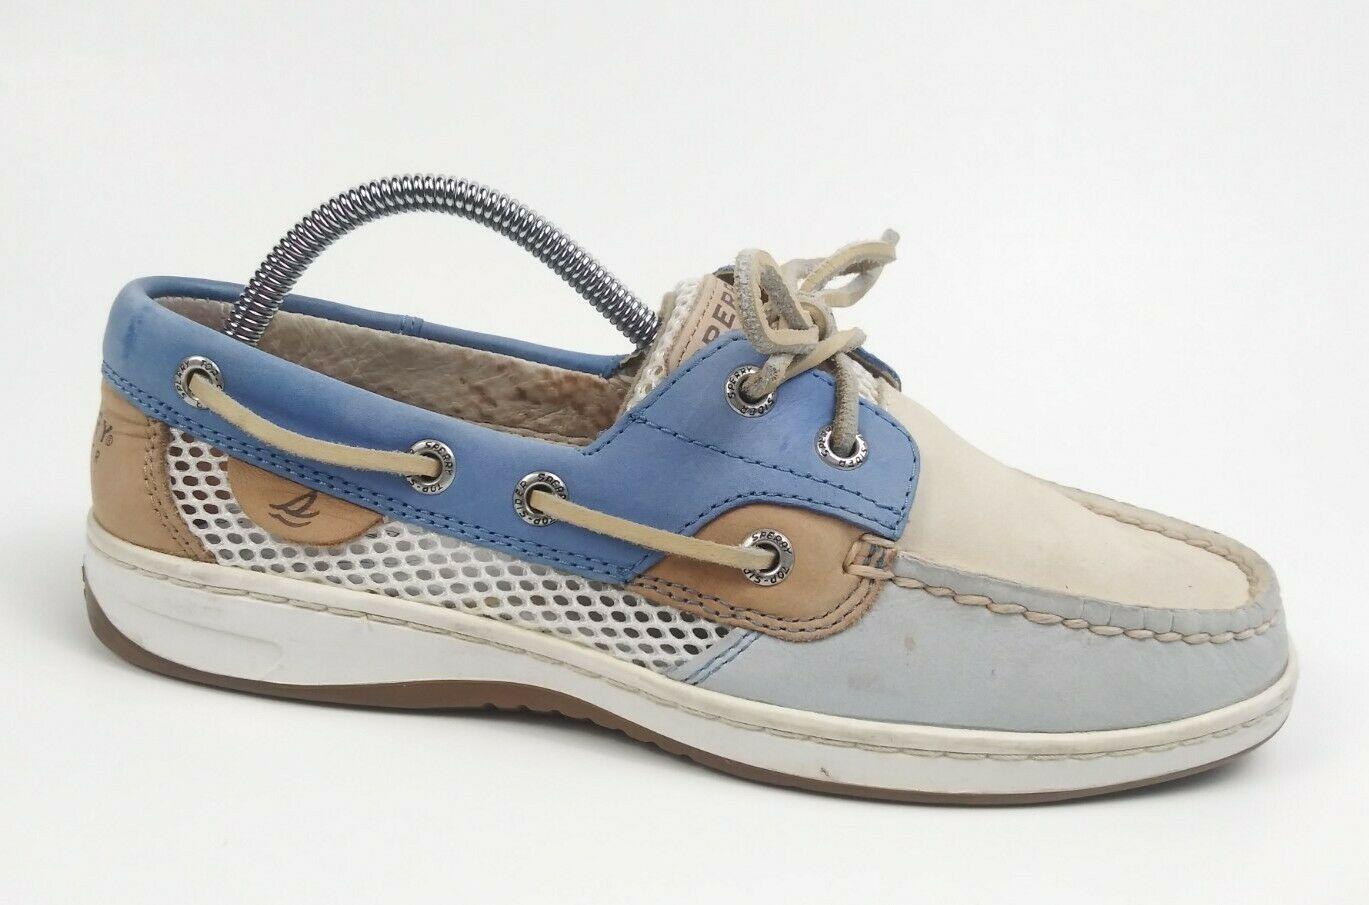 Sperry Top Sider Women's White Bluefish Size 6.5 M GUC